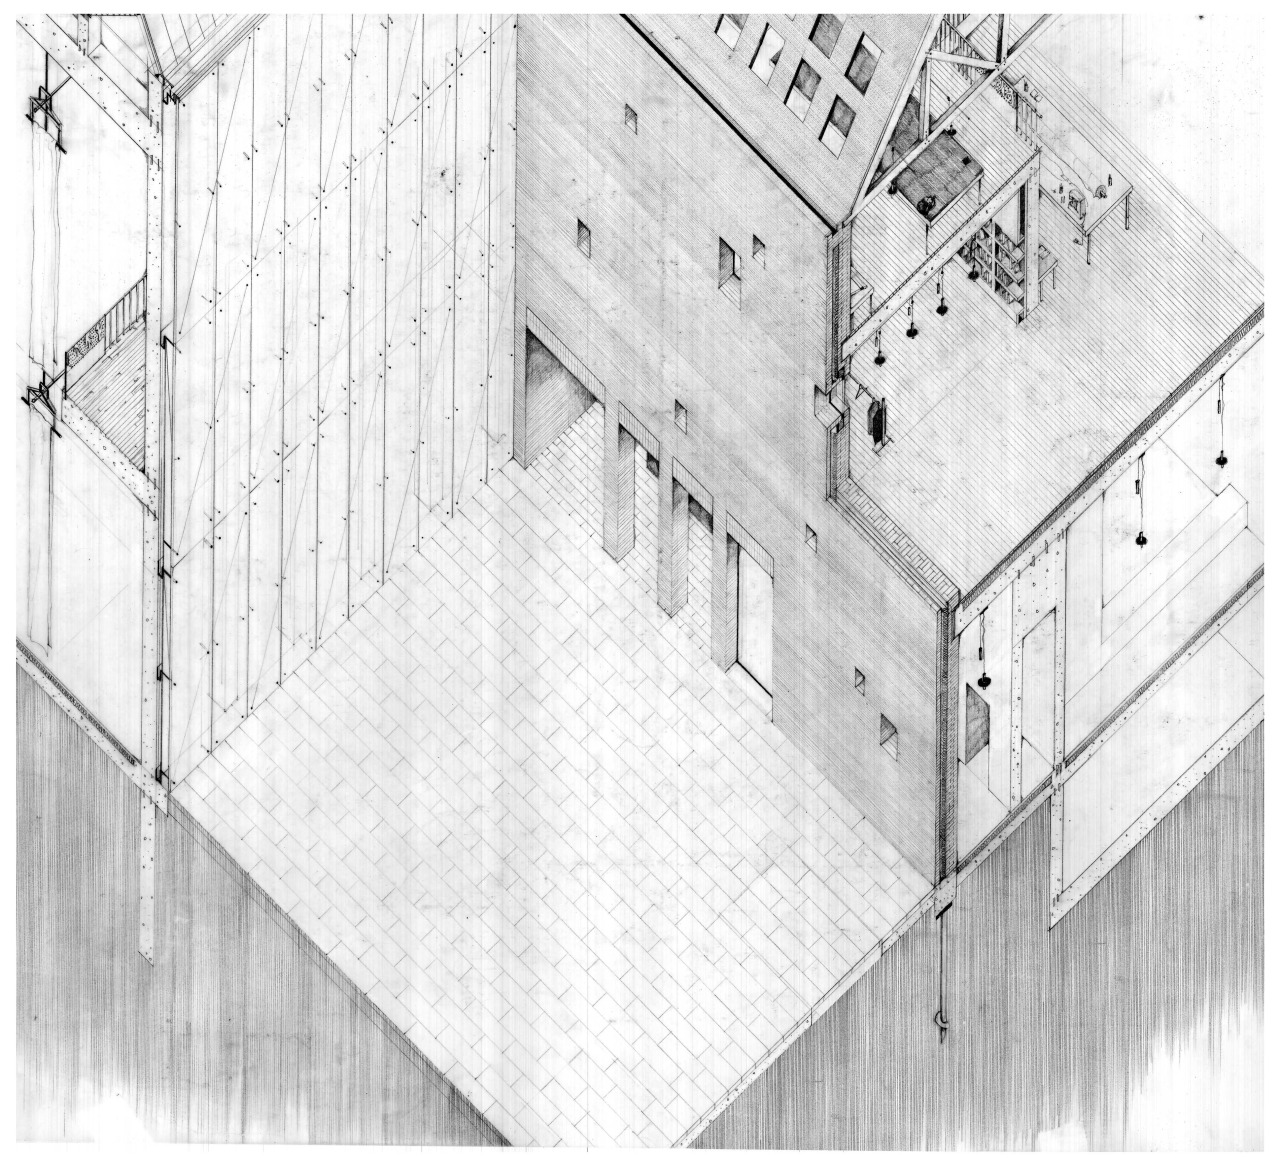 Tekstiler Kvartal, Construction Axonometric